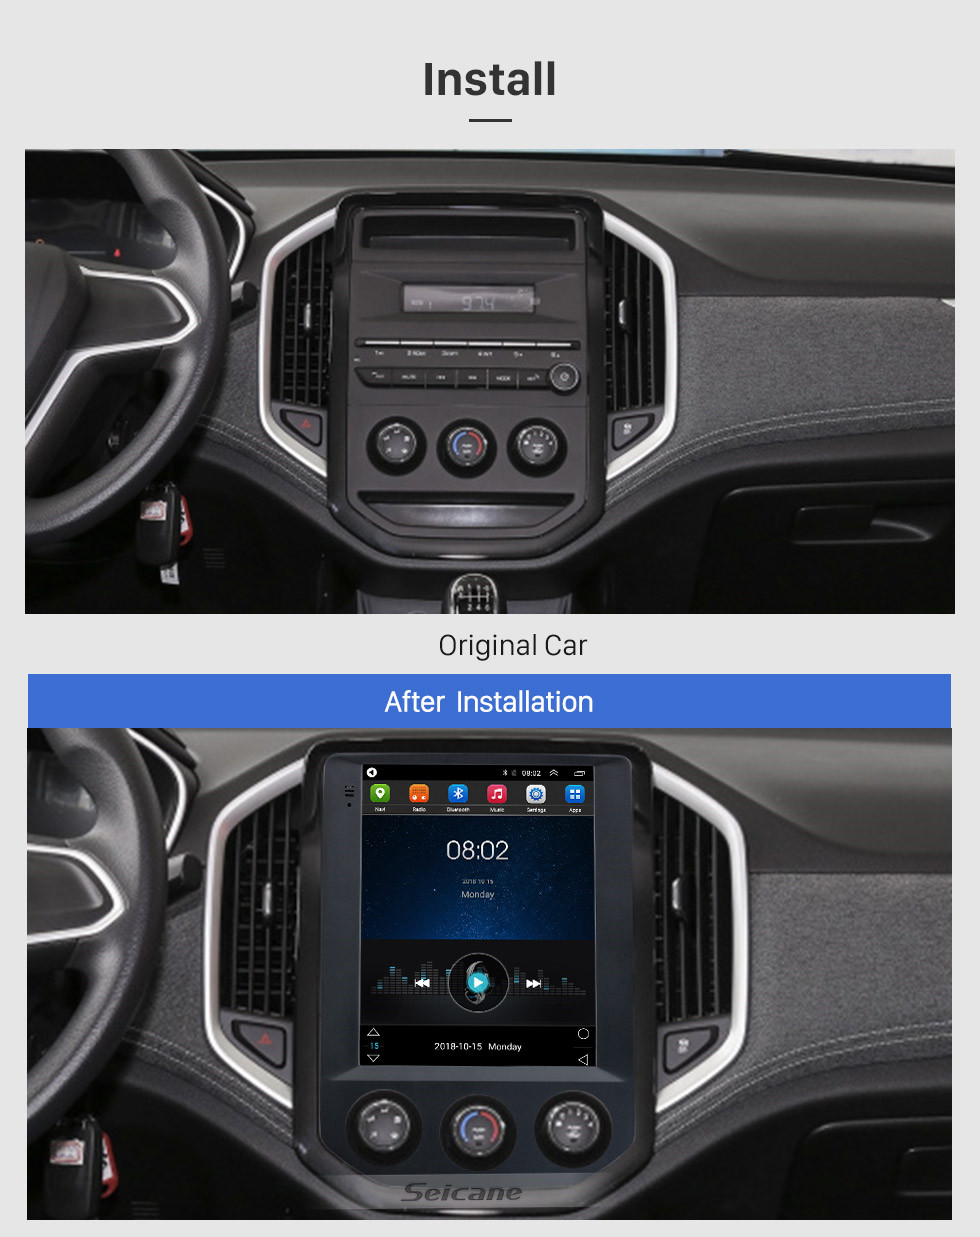 Seicane 2020 SGMW BaoJun 530 9.7 inch Android 9.1 GPS Navigation Radio with HD Touchscreen Bluetooth WIFI AUX support Carplay Rearview camera